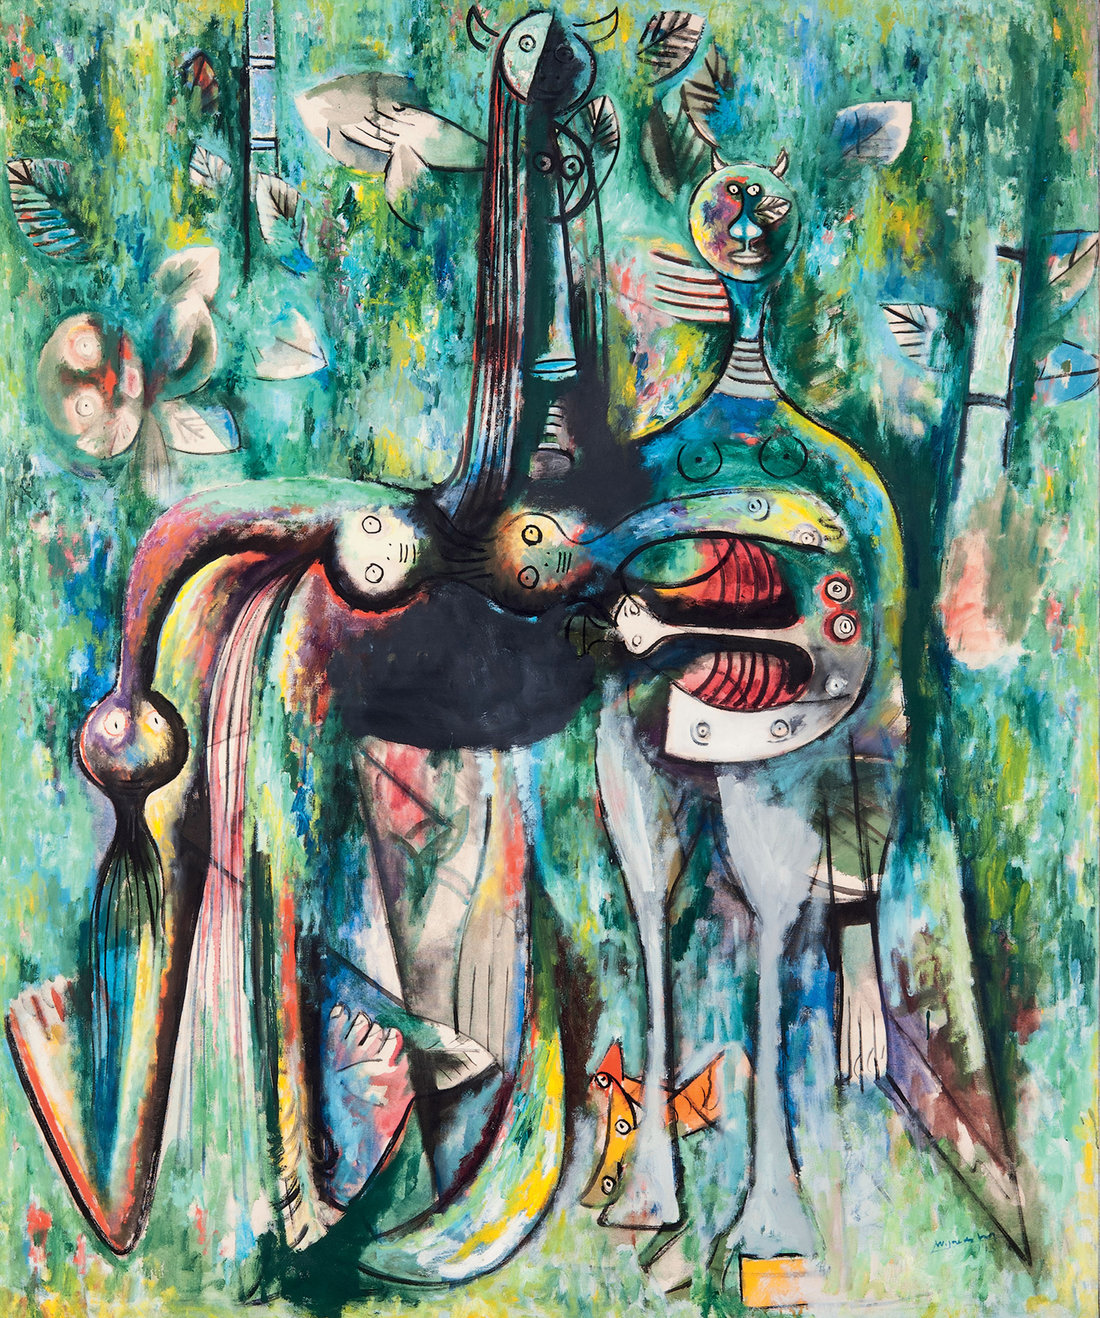 wifredo lam the iconic cuban artist you need to know about